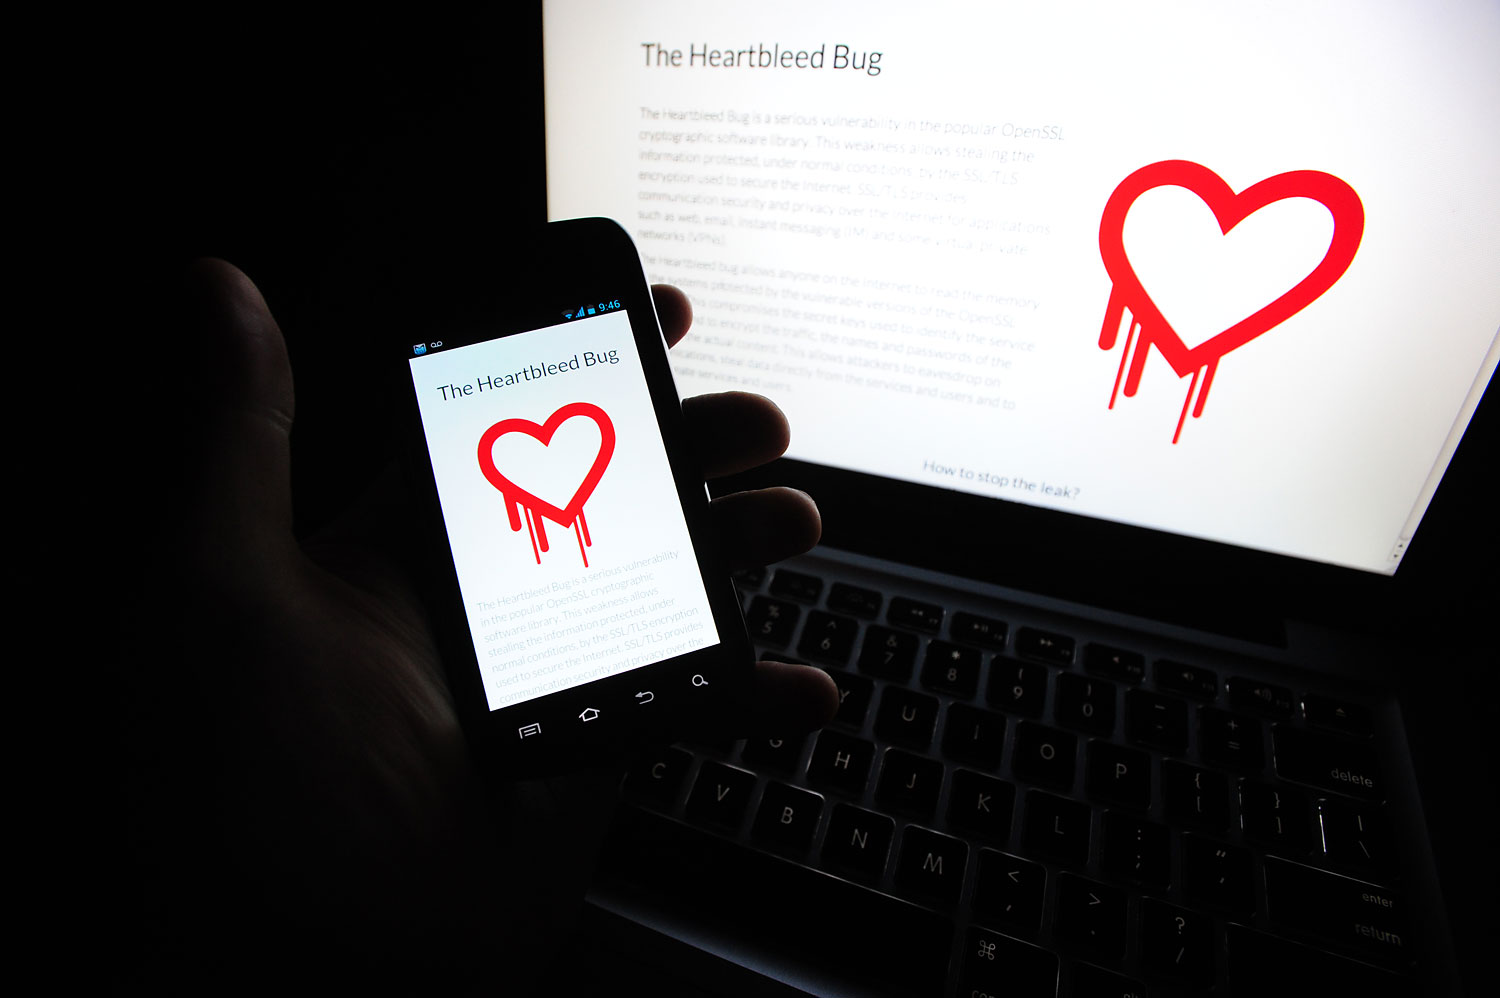 The Heartbleed.com information website displayed on a cell phone and laptop on April 17th 2014.